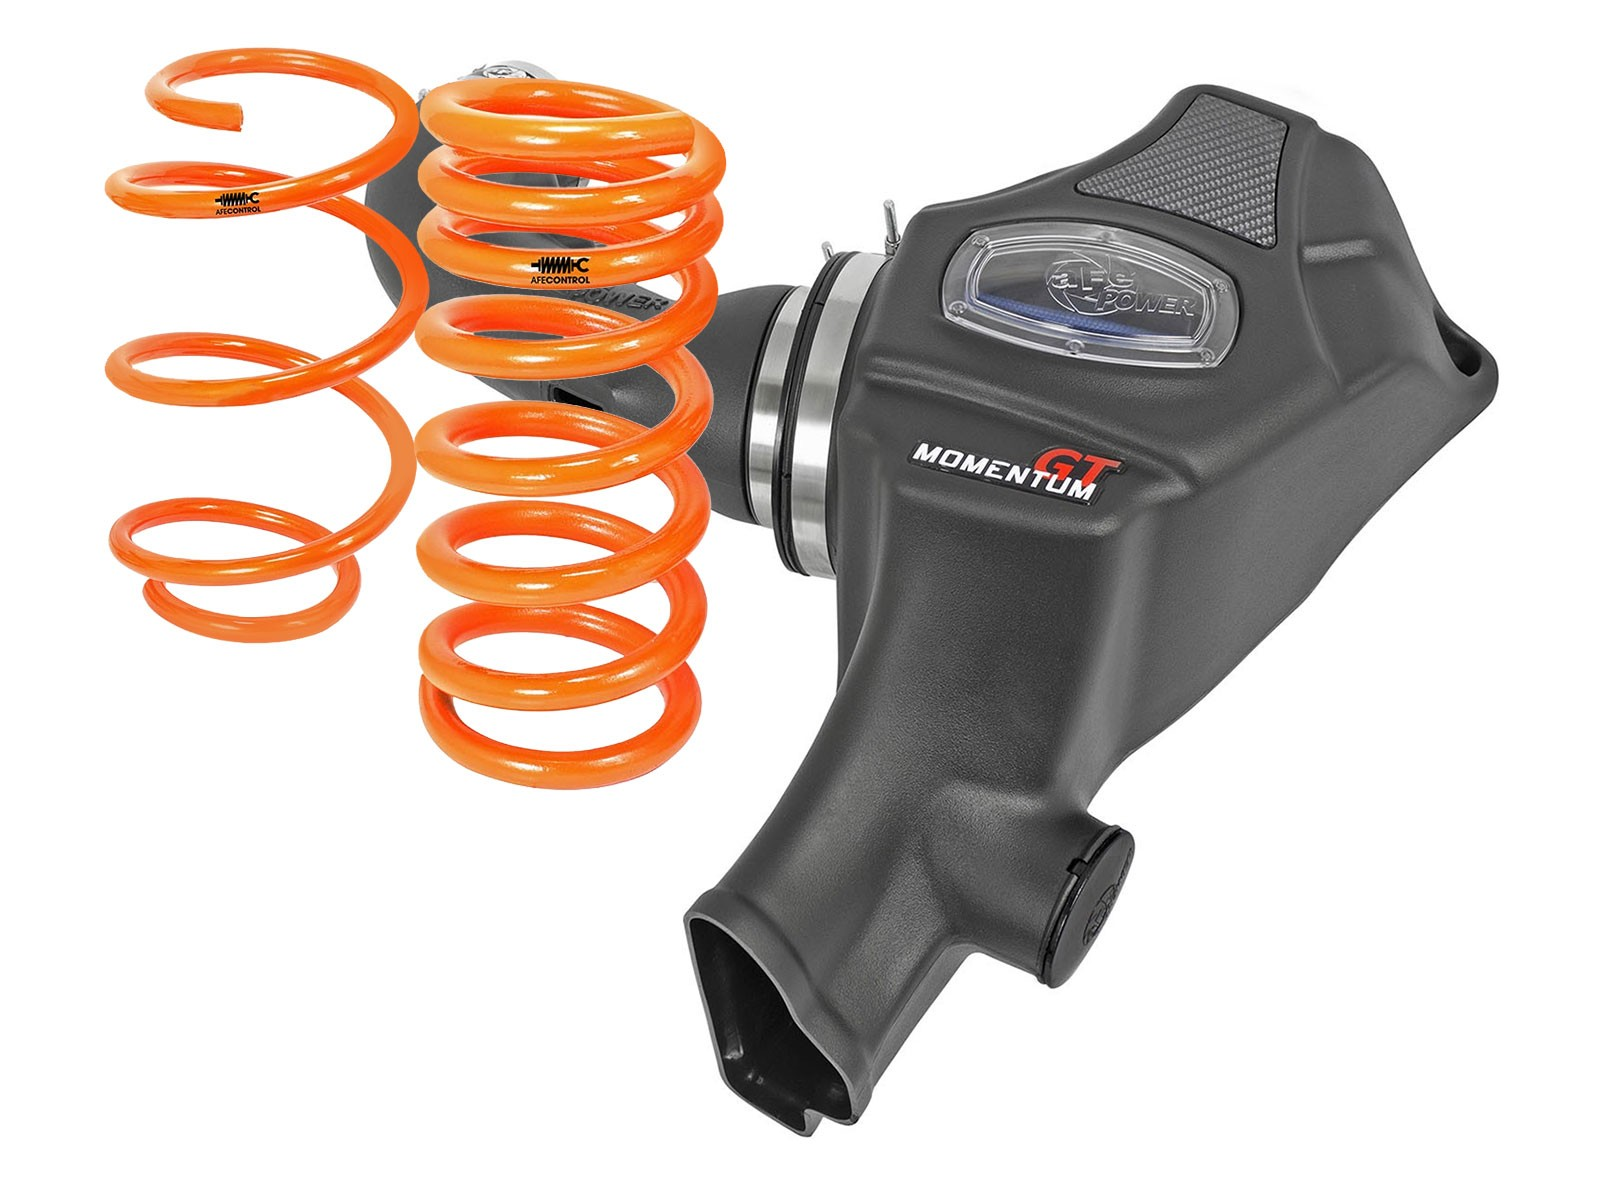 Momentum GT Cold Air Intake System w/Pro 5R Filter Media & Lowering Springs - Web Exclusive